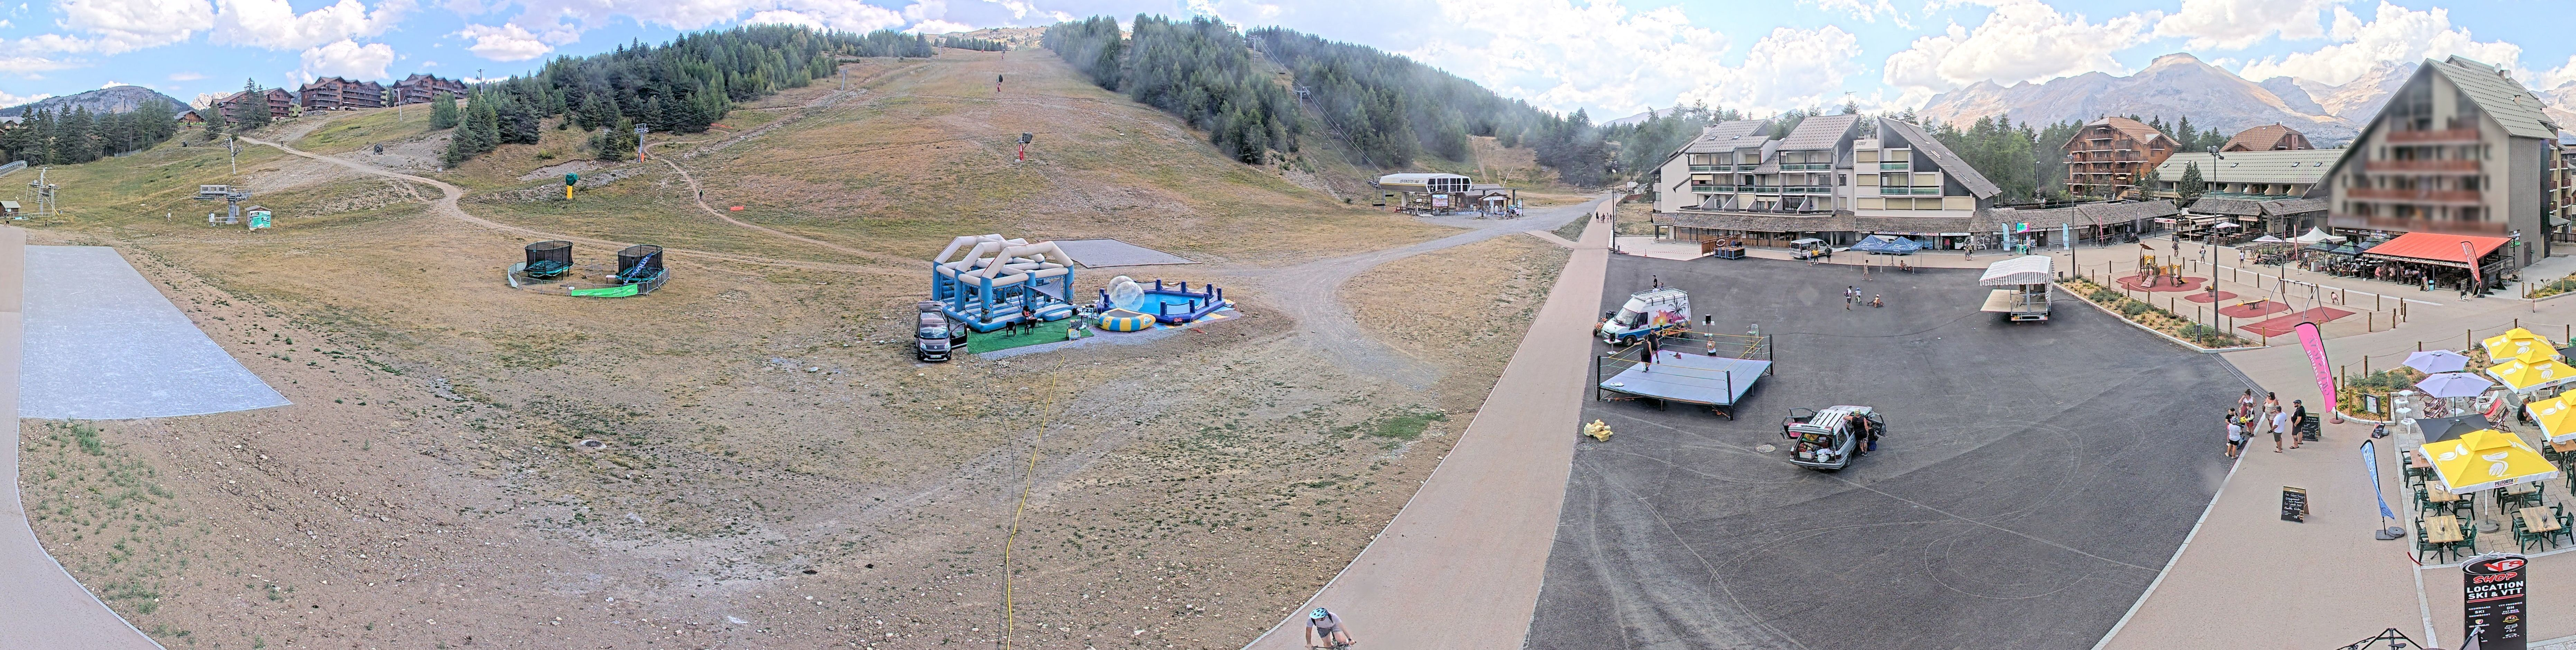 SuperDevoluy webcam panorama - Arrival of the Jas Chairlift